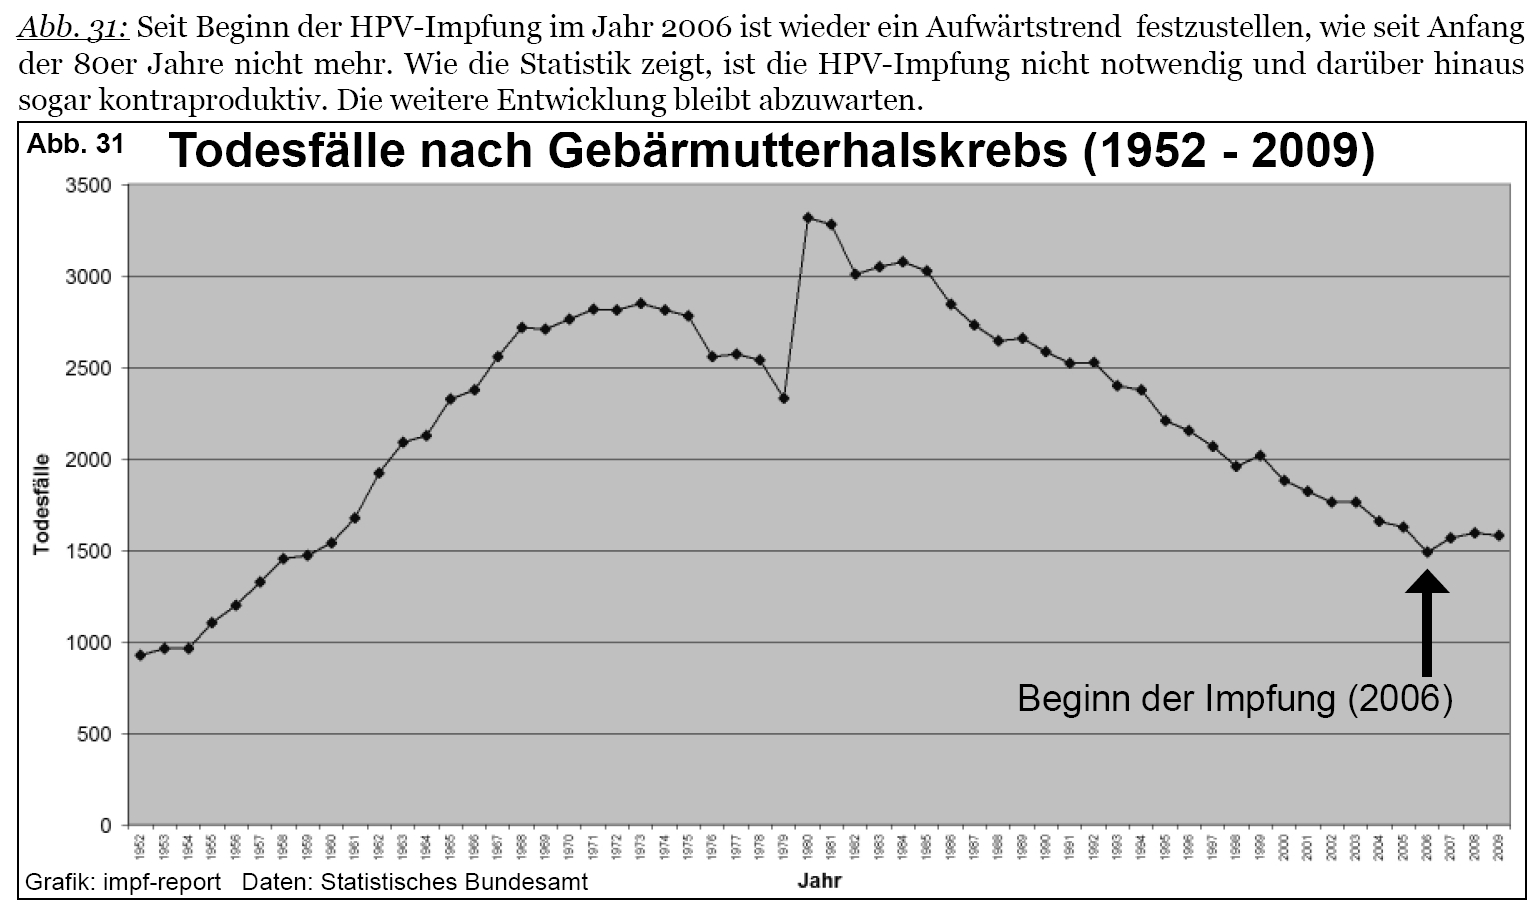 hpv impfung todesfalle)